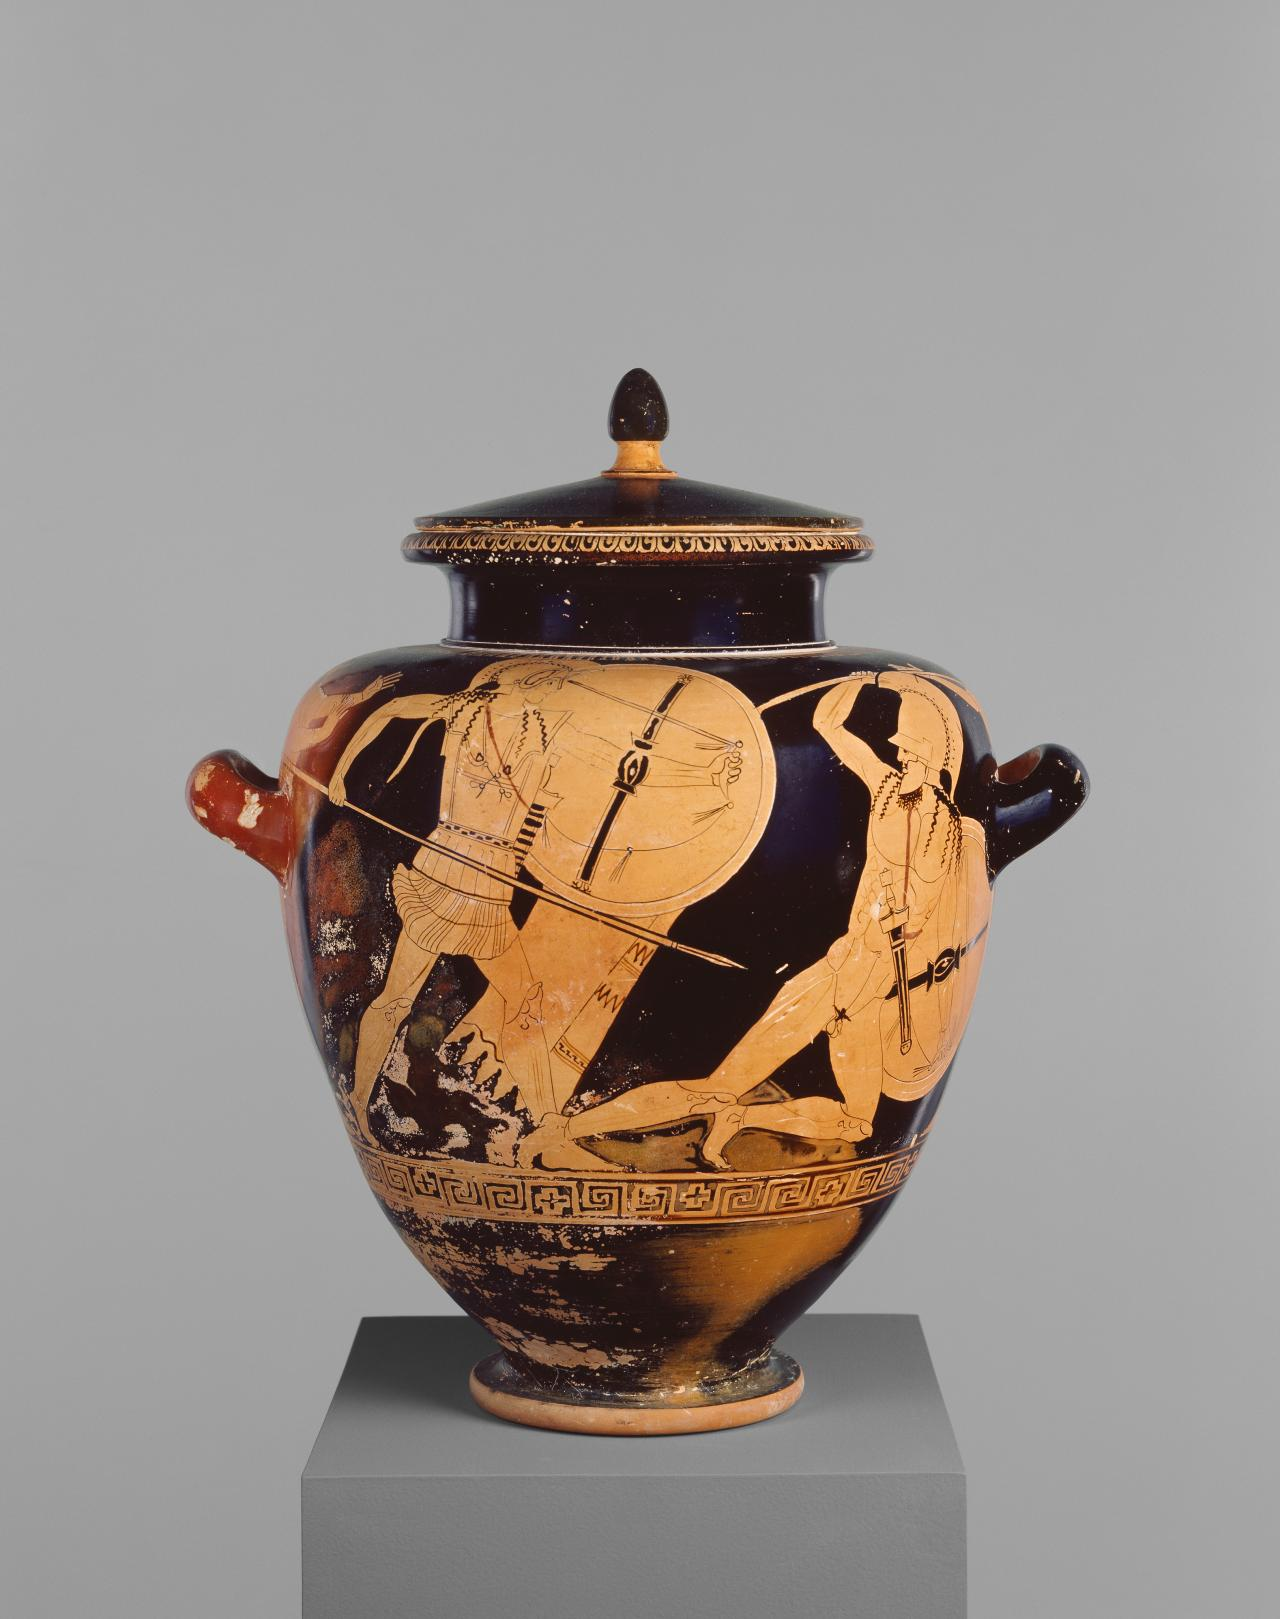 Stamnos (Attic red-figure ware)